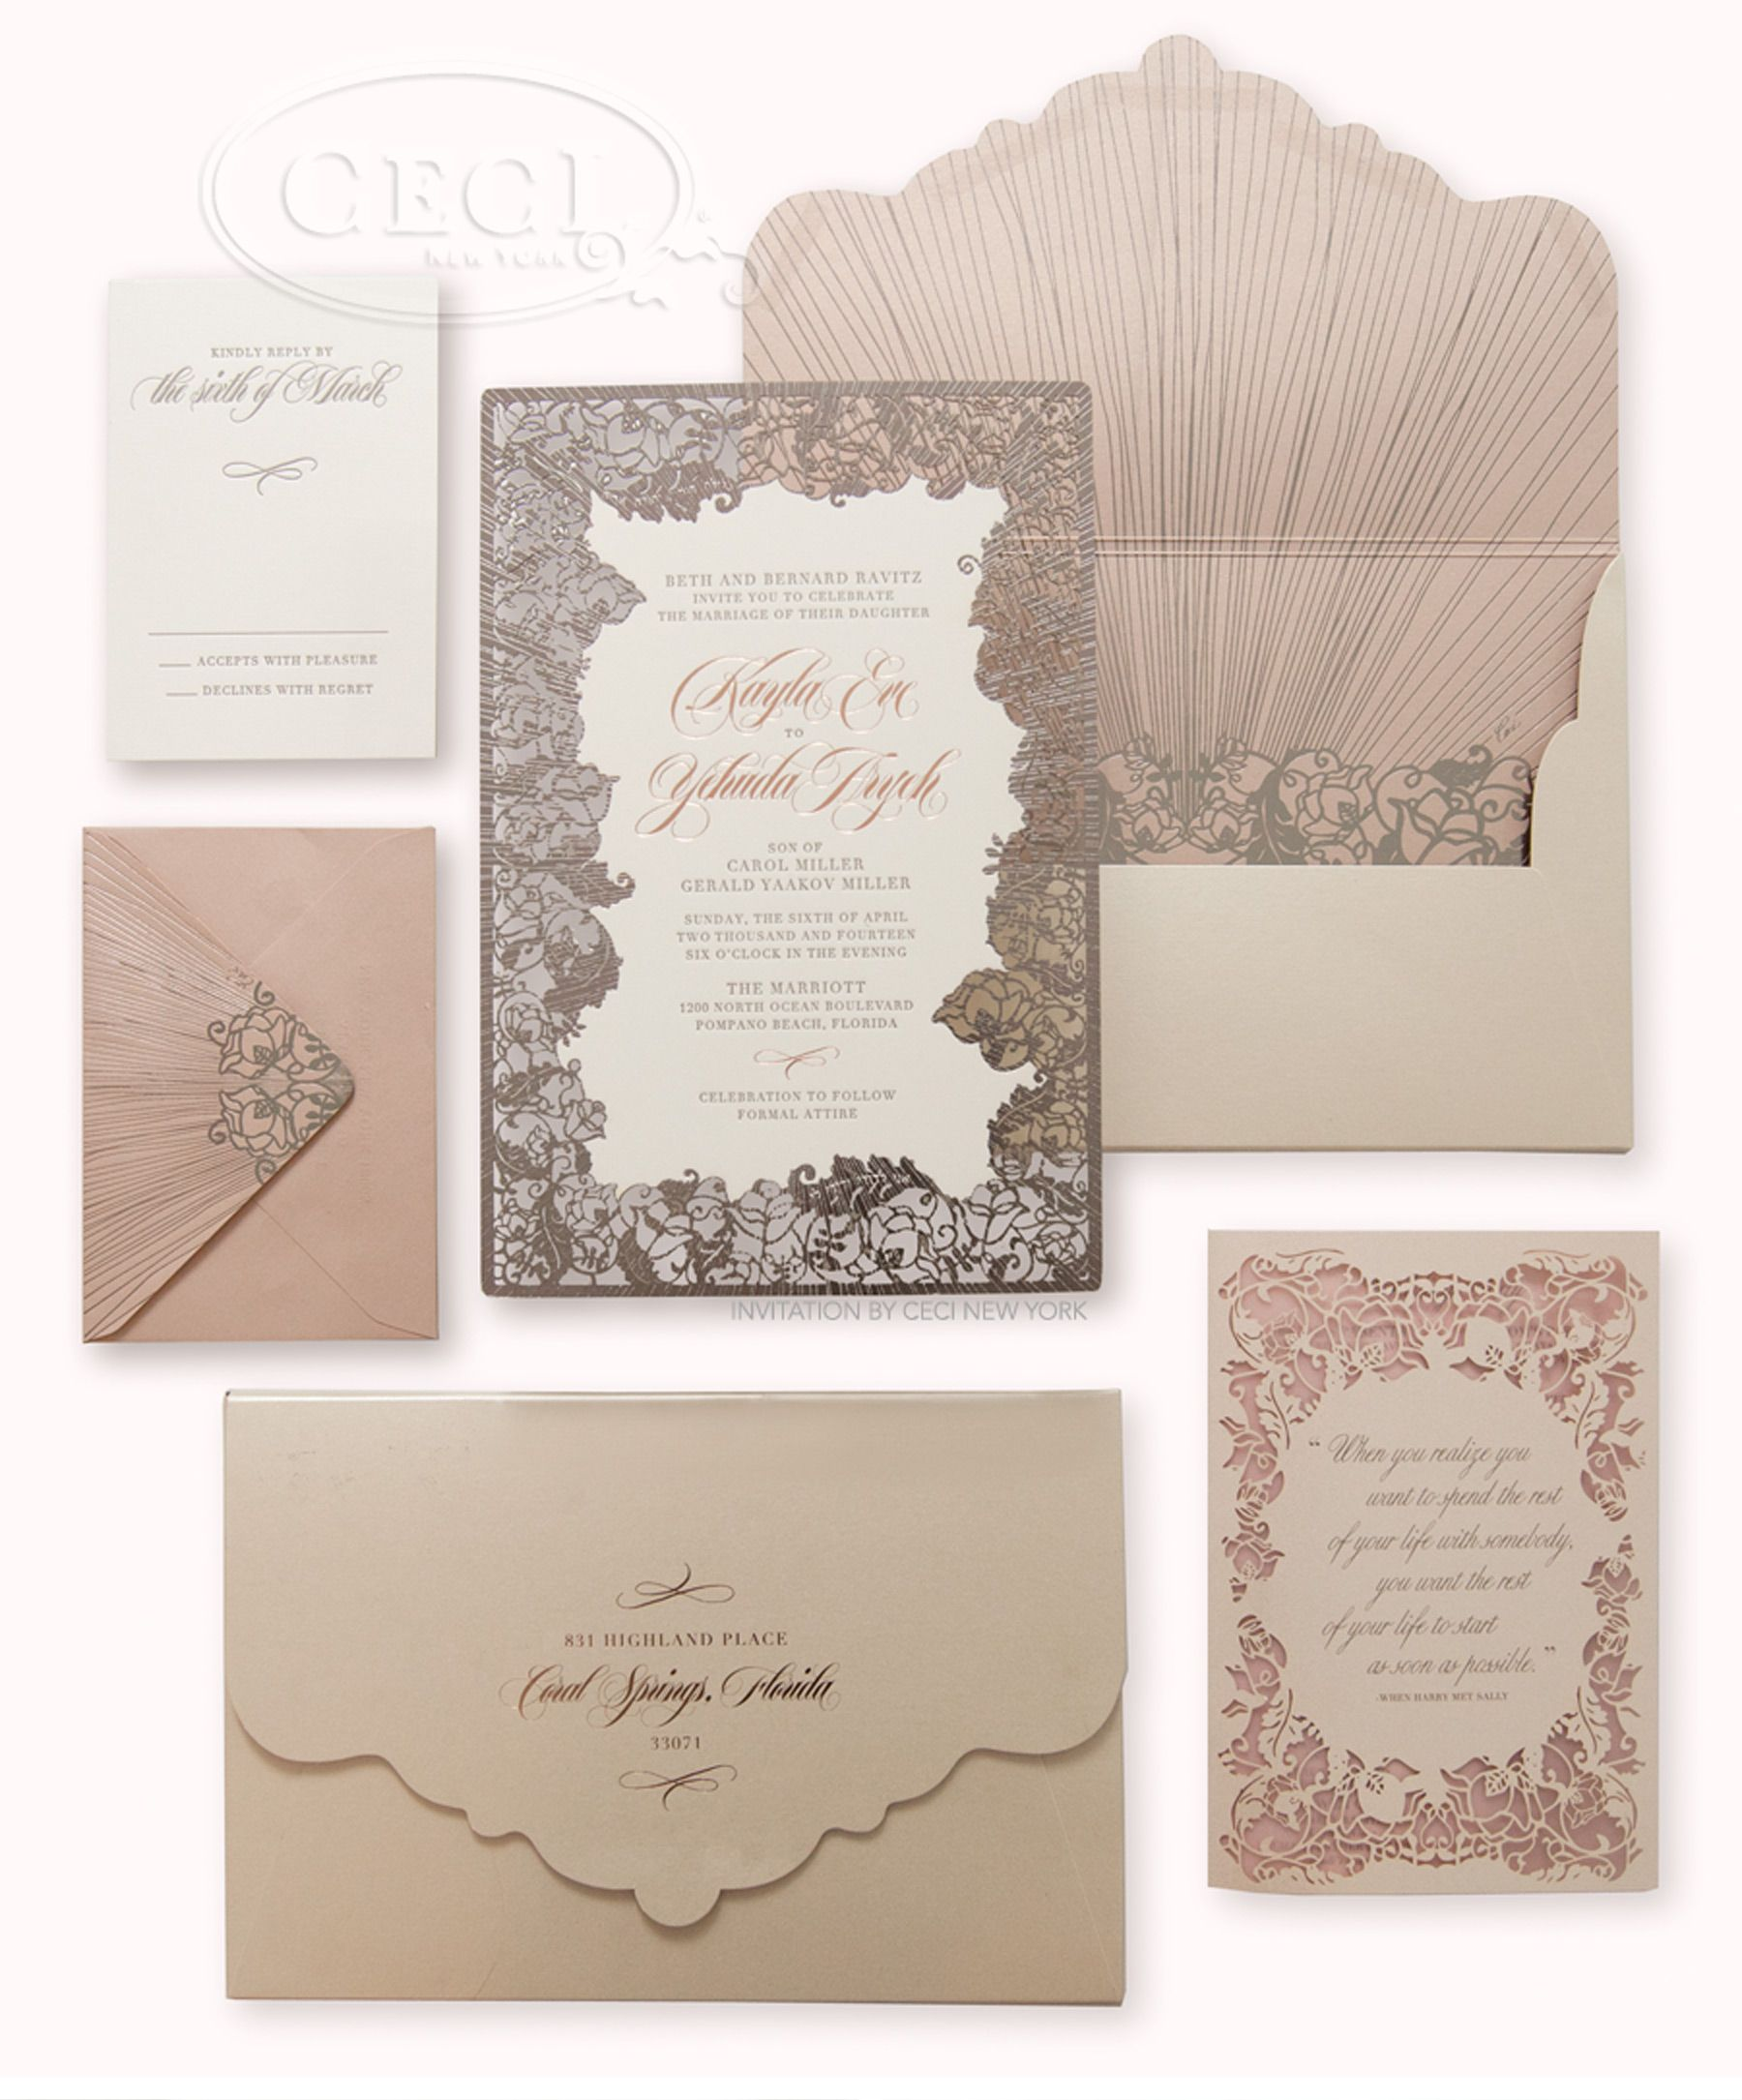 Cecistyle Ceci S Guide To Inspiring Style Ceci New York Target Wedding Invitations Traditional Wedding Invitations Luxury Wedding Invitations